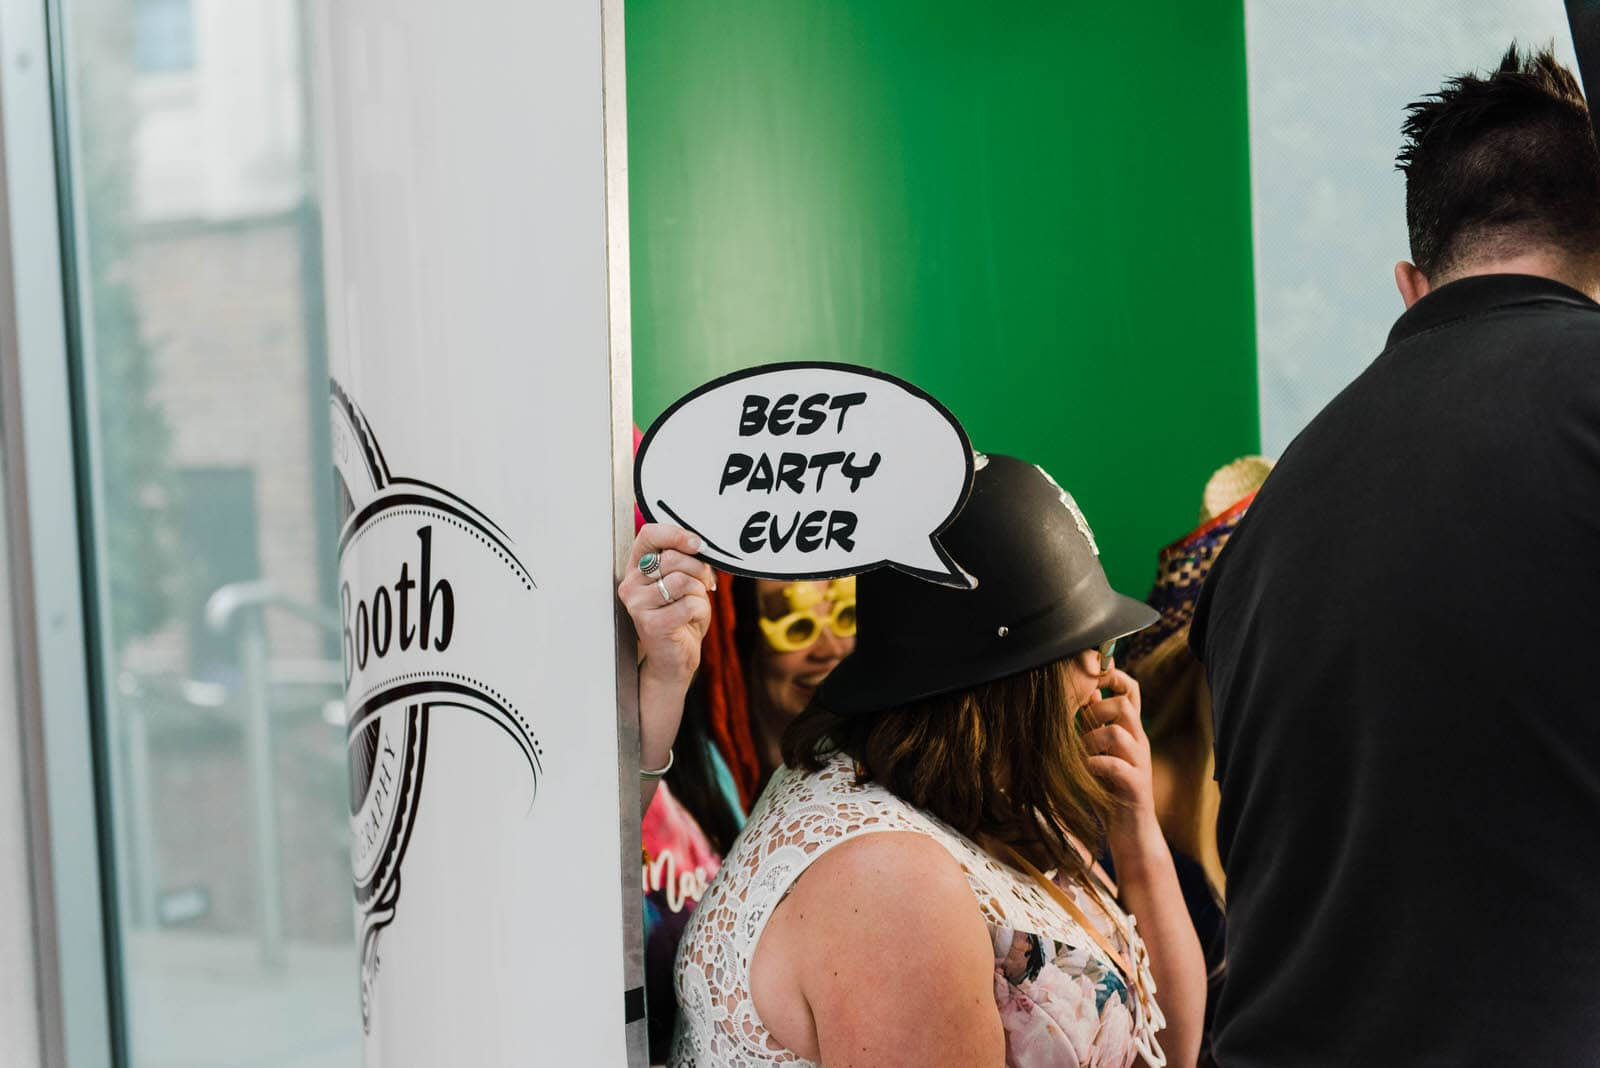 Wedding guests in photo booth at Millennium Gallery